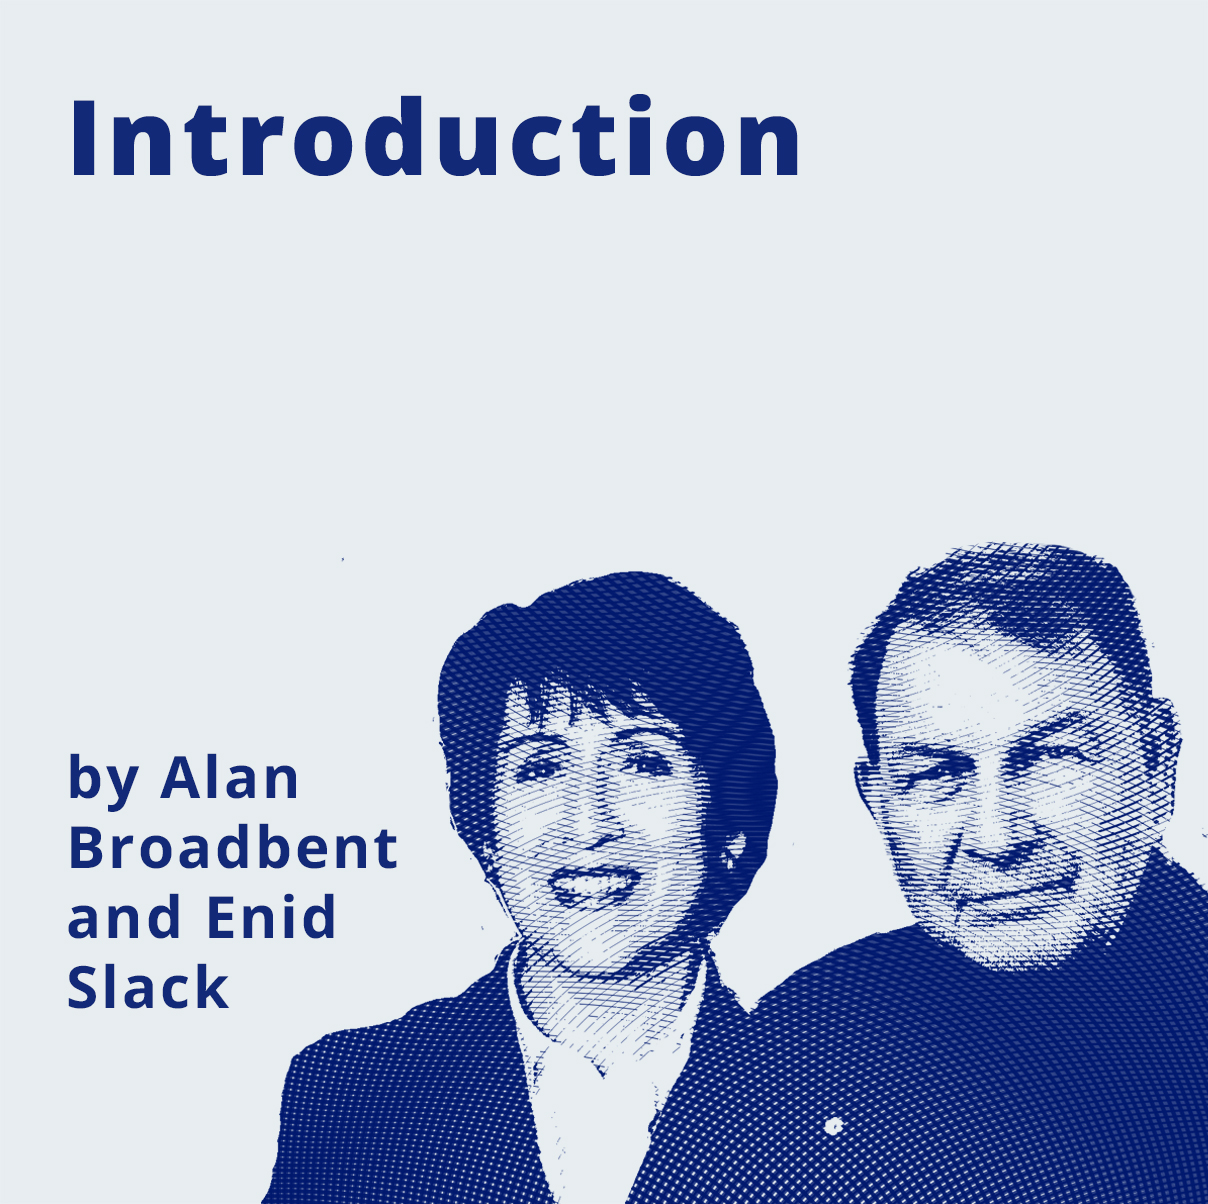 Introduction by Alan Broadbent and Enid Slack